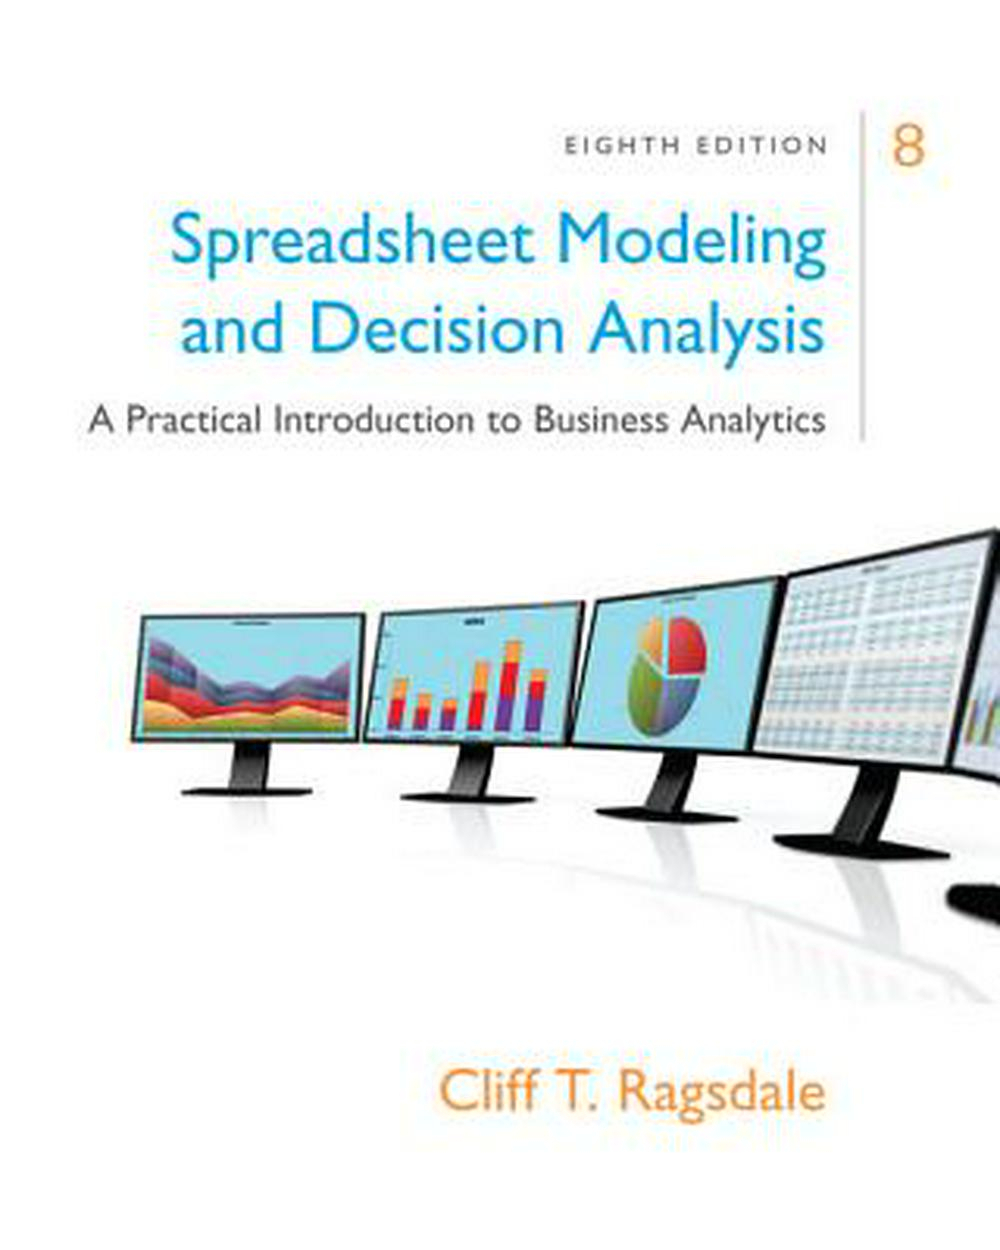 Spreadsheet Modeling Inside Spreadsheet Modeling  Decision Analysis: A Practical Introduction